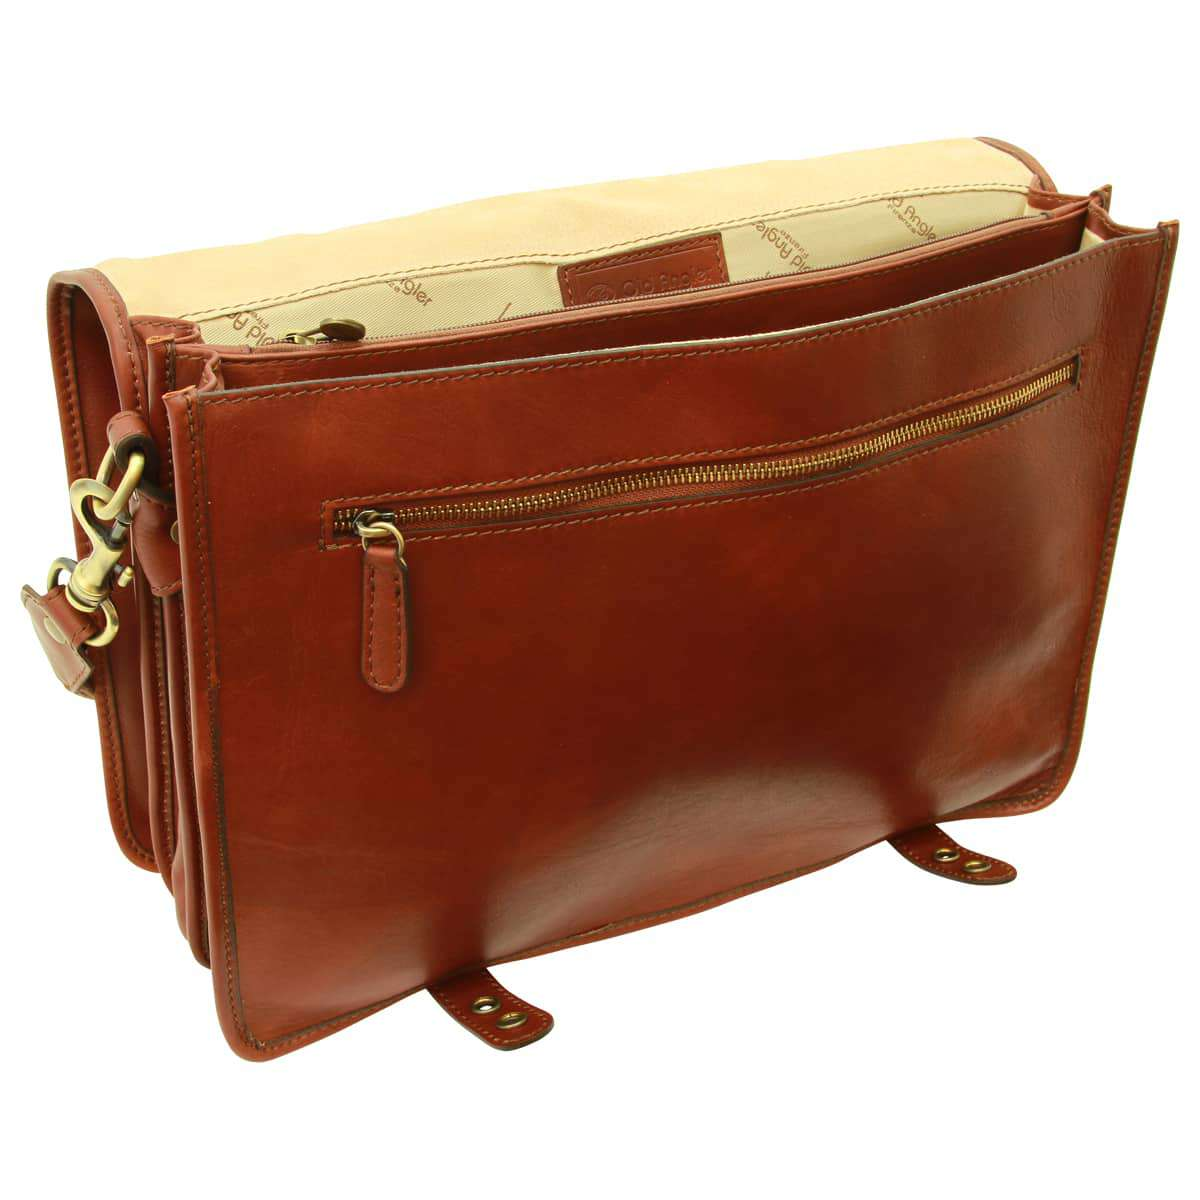 Calfskin Nappa leather briefcase - Brown | 031591MA E | Old Angler Firenze